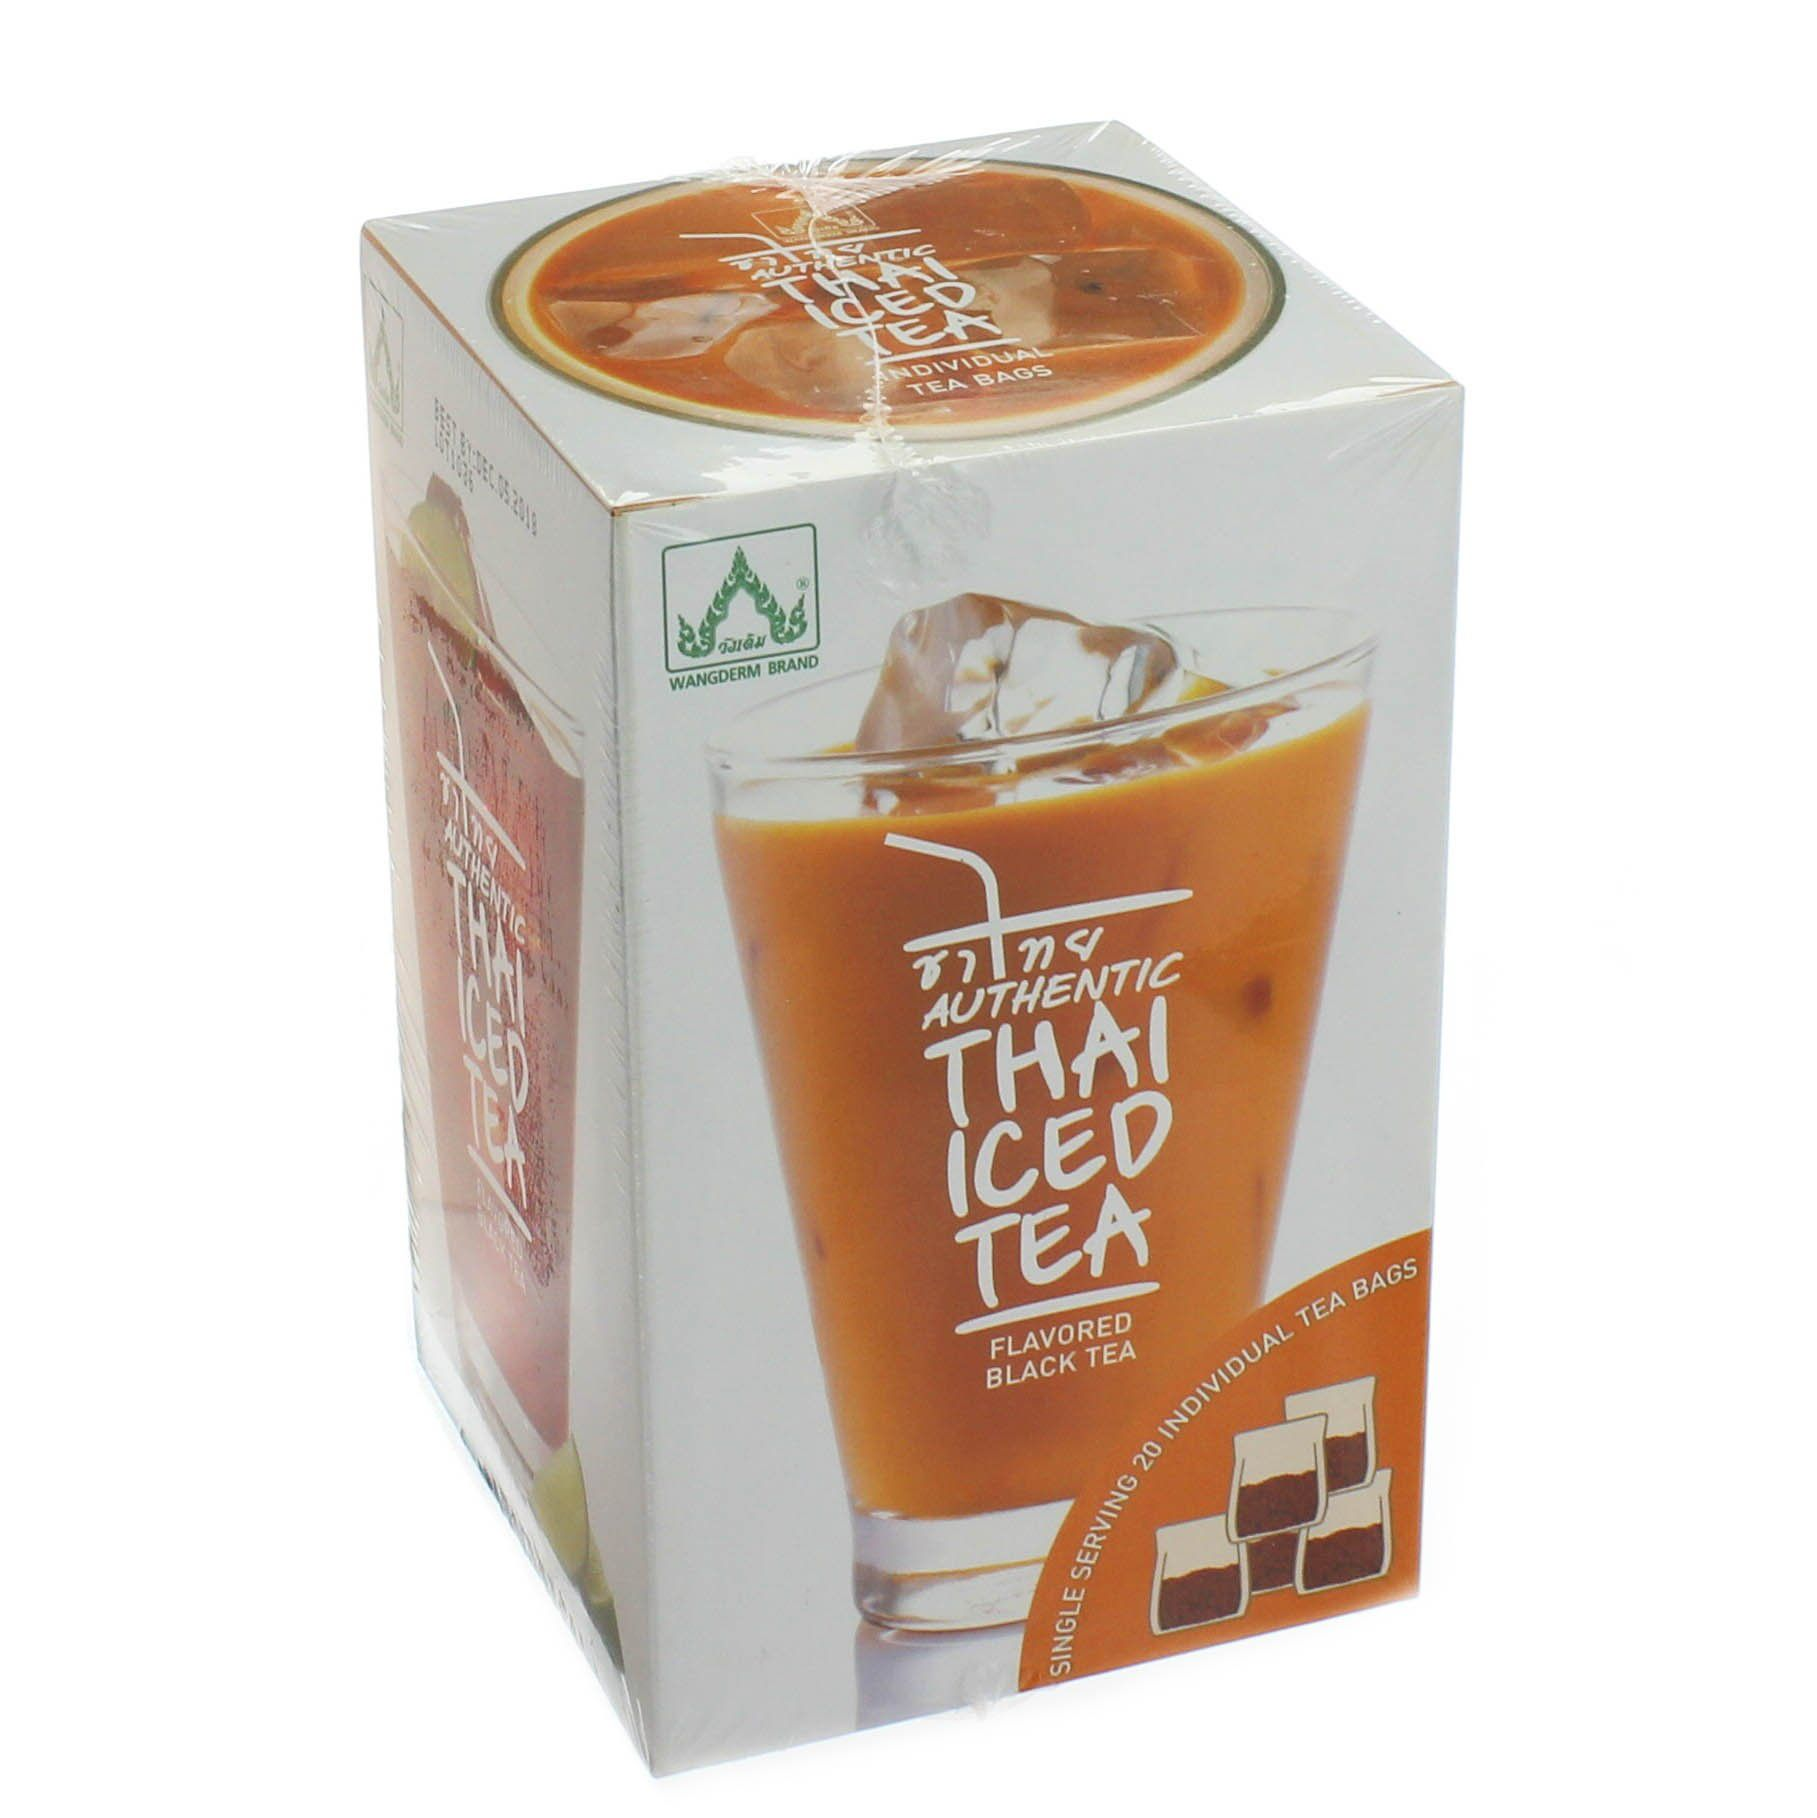 Wang Derm Thai Iced Tea ‑ Shop Tea at H‑E‑B in 2020 Iced